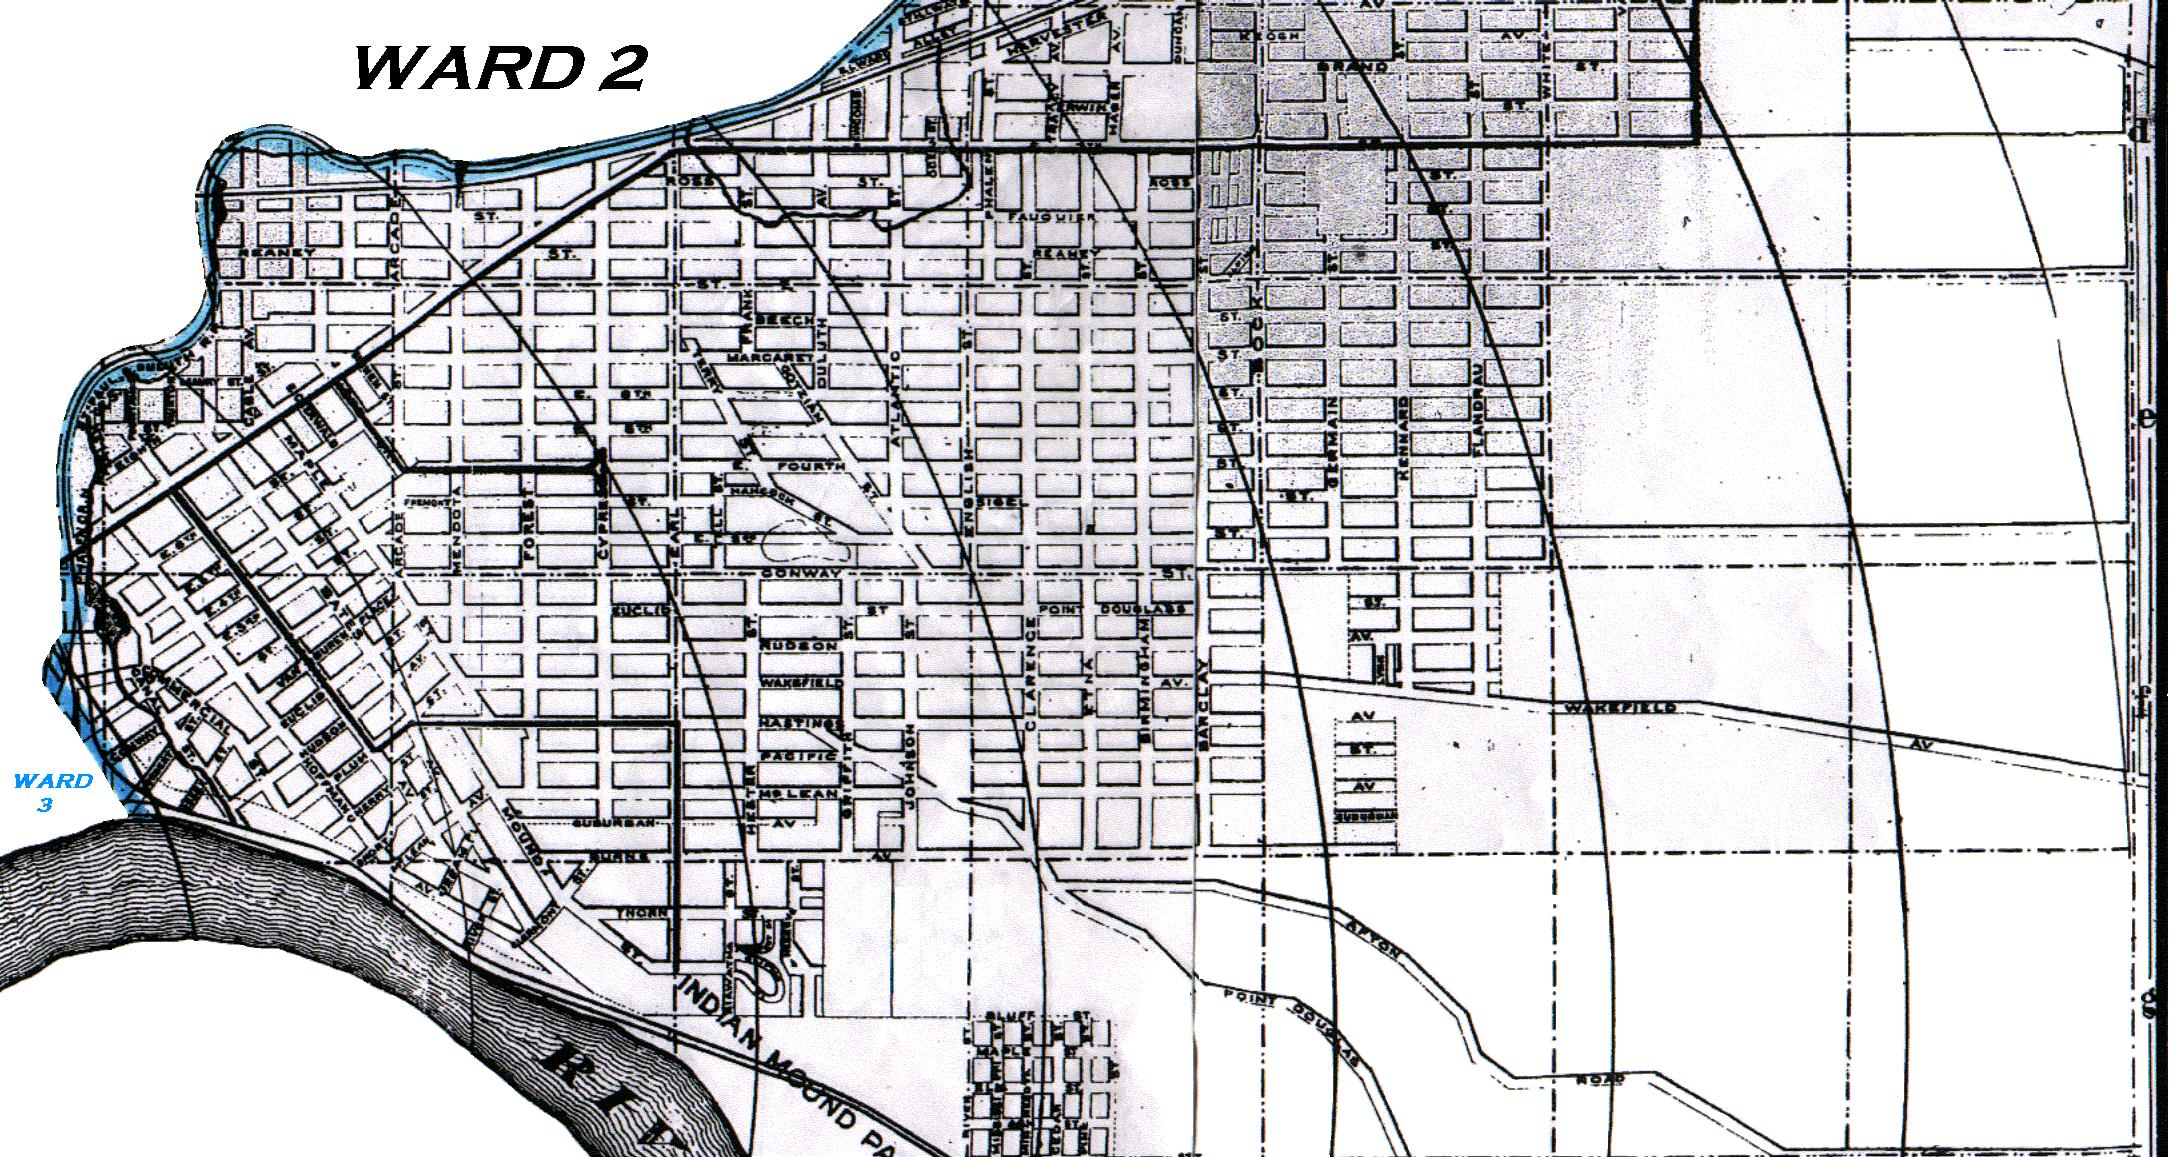 KinSource 1909 Map Of St Paul  Ward 2